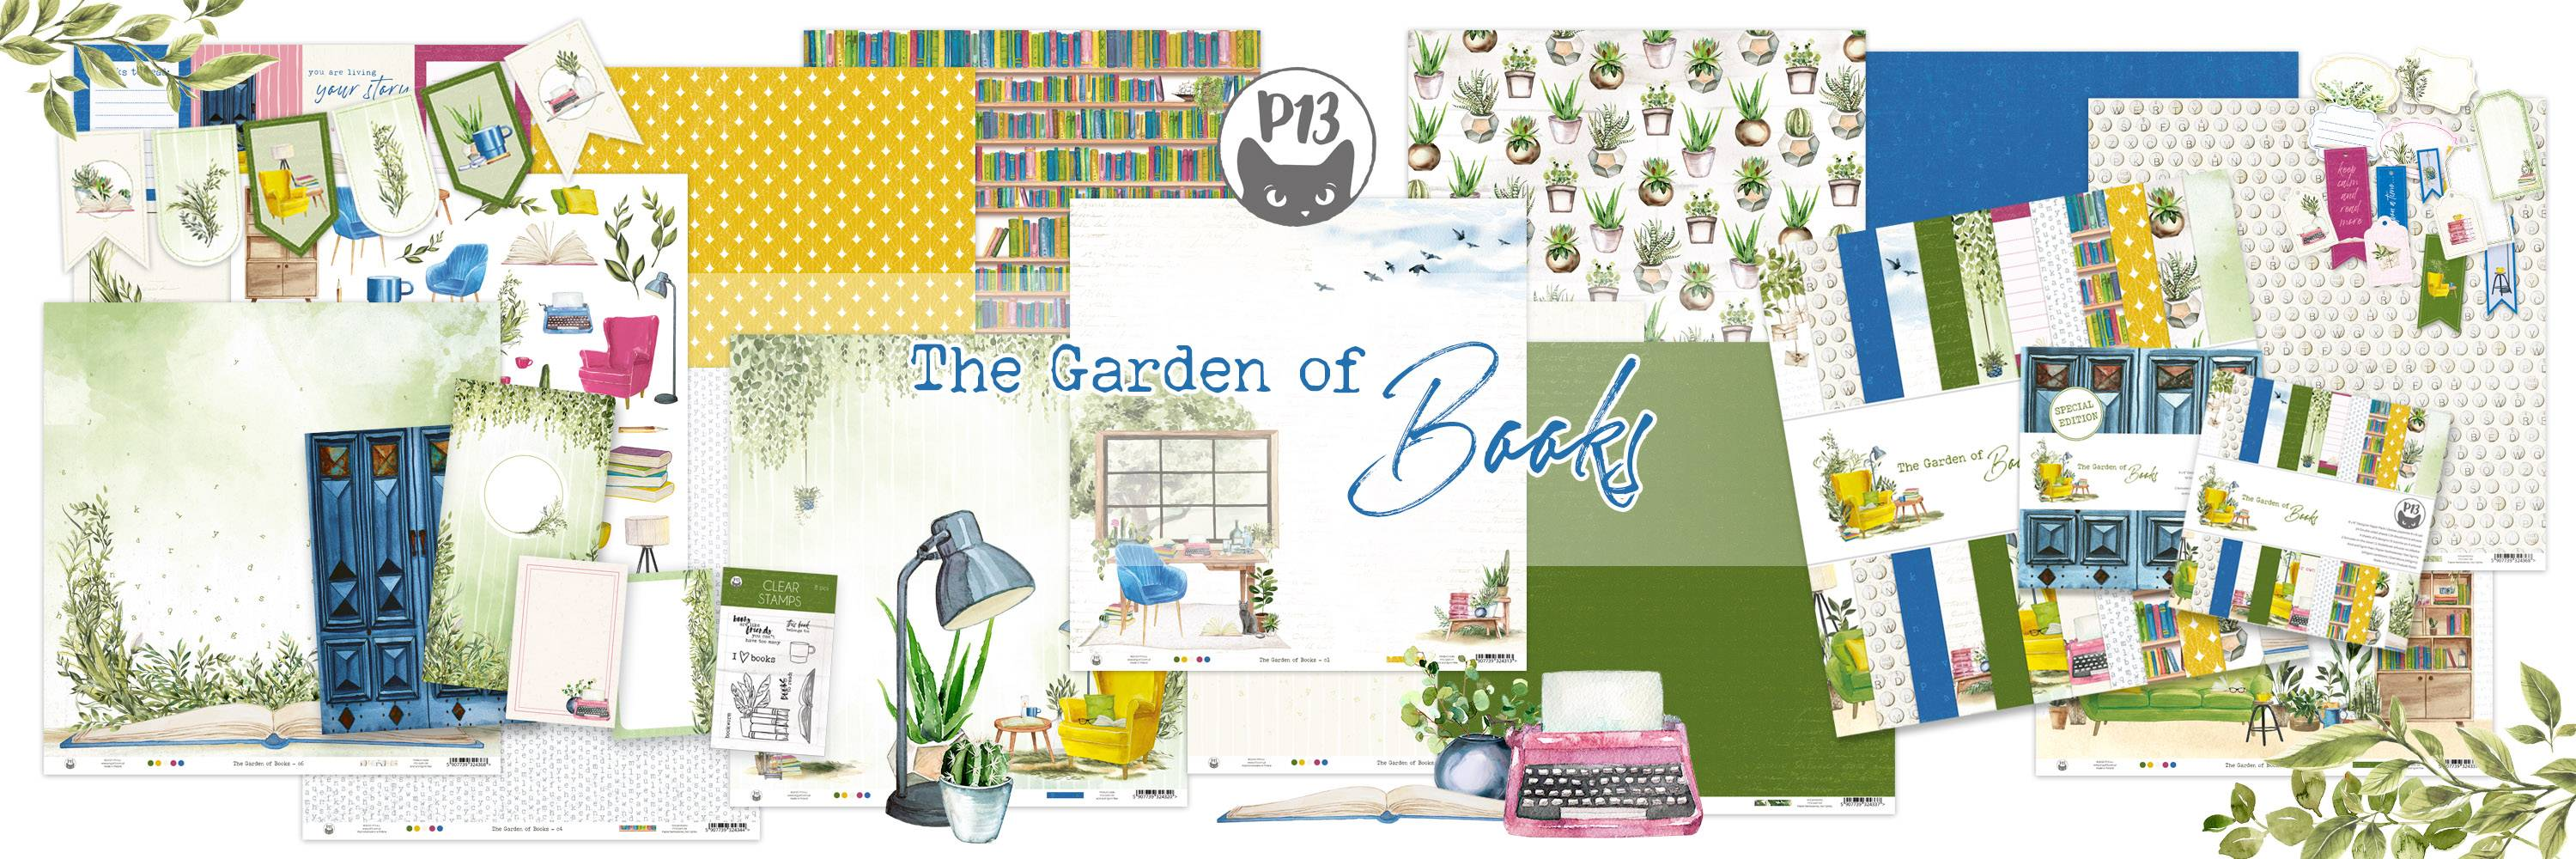 https://store.p13.com.pl/en/90-new-the-garden-of-books